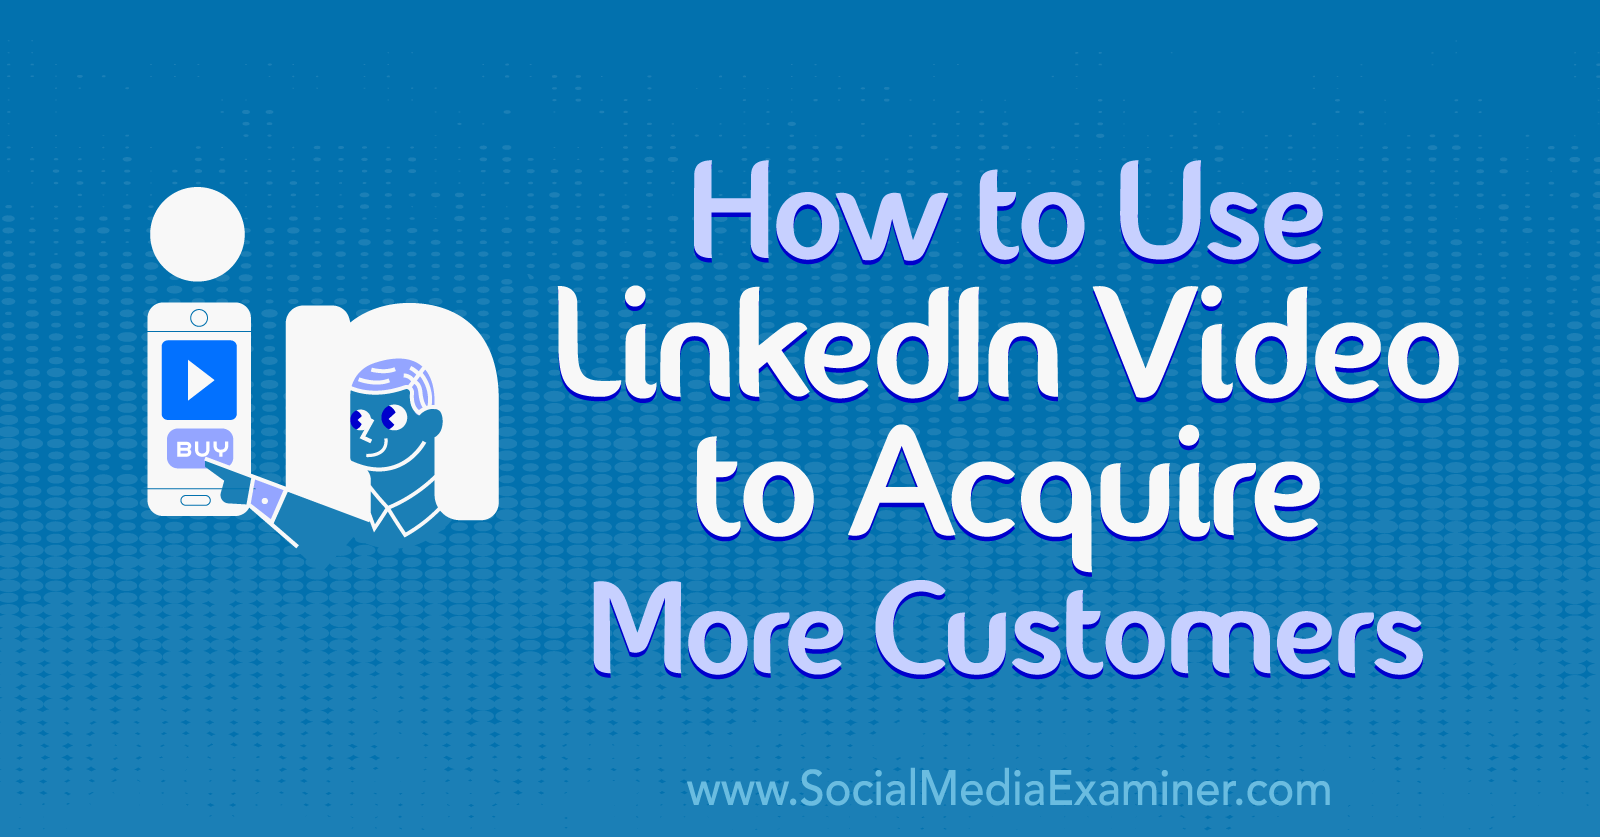 How to Use LinkedIn Video to Acquire More Customers by Koushik Marka on Social Media Examiner.